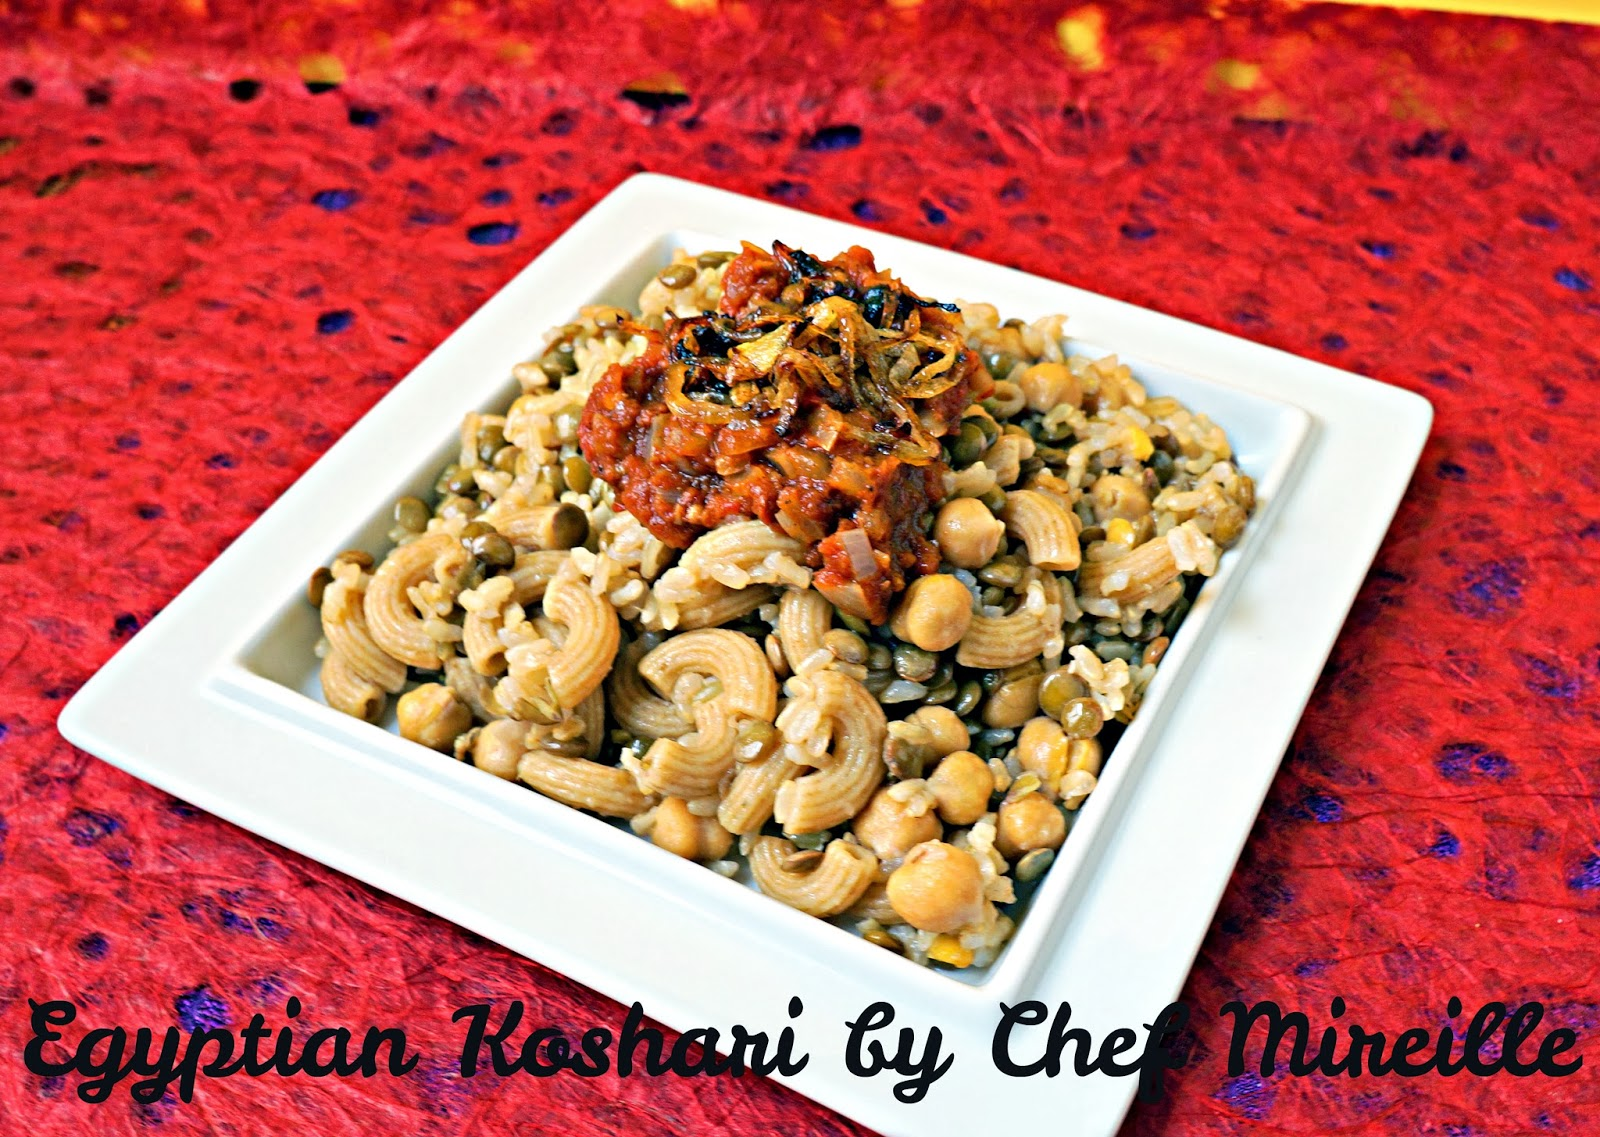 Egyptian Koshari